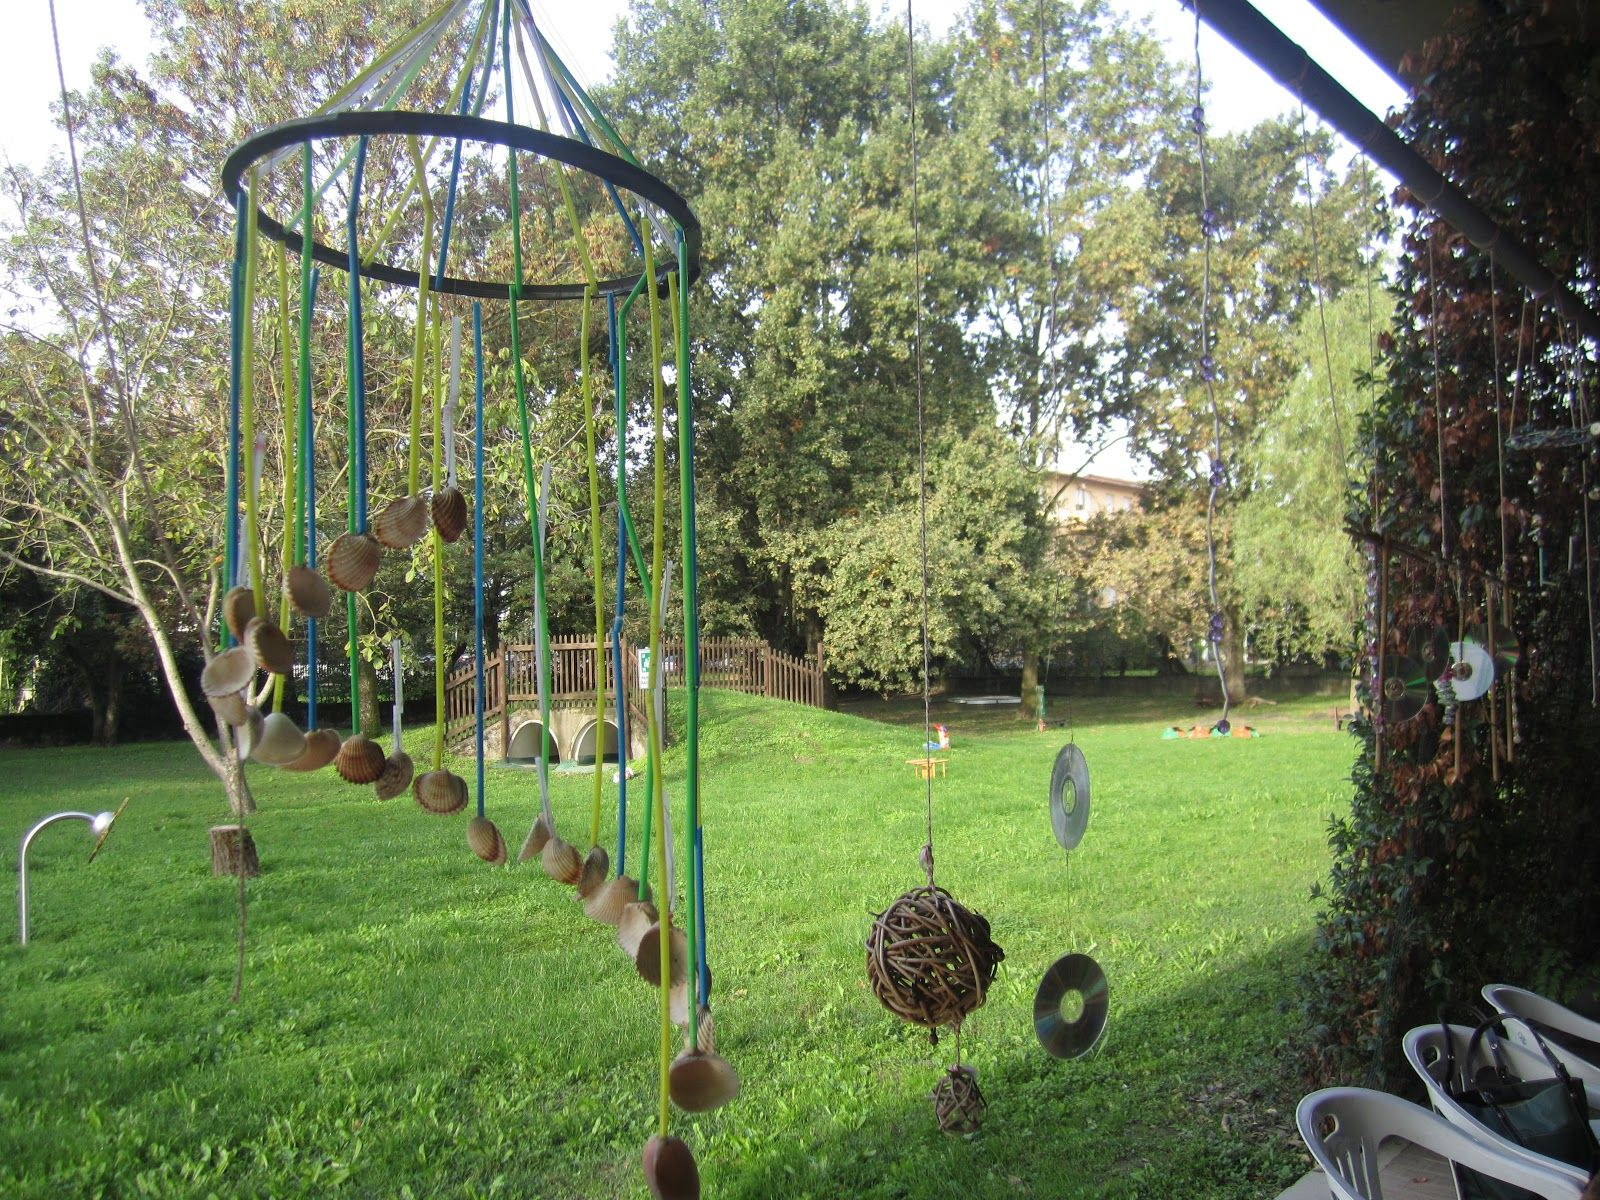 Sensory Garden For Children If Anyone In Wisconsin Is Looking To